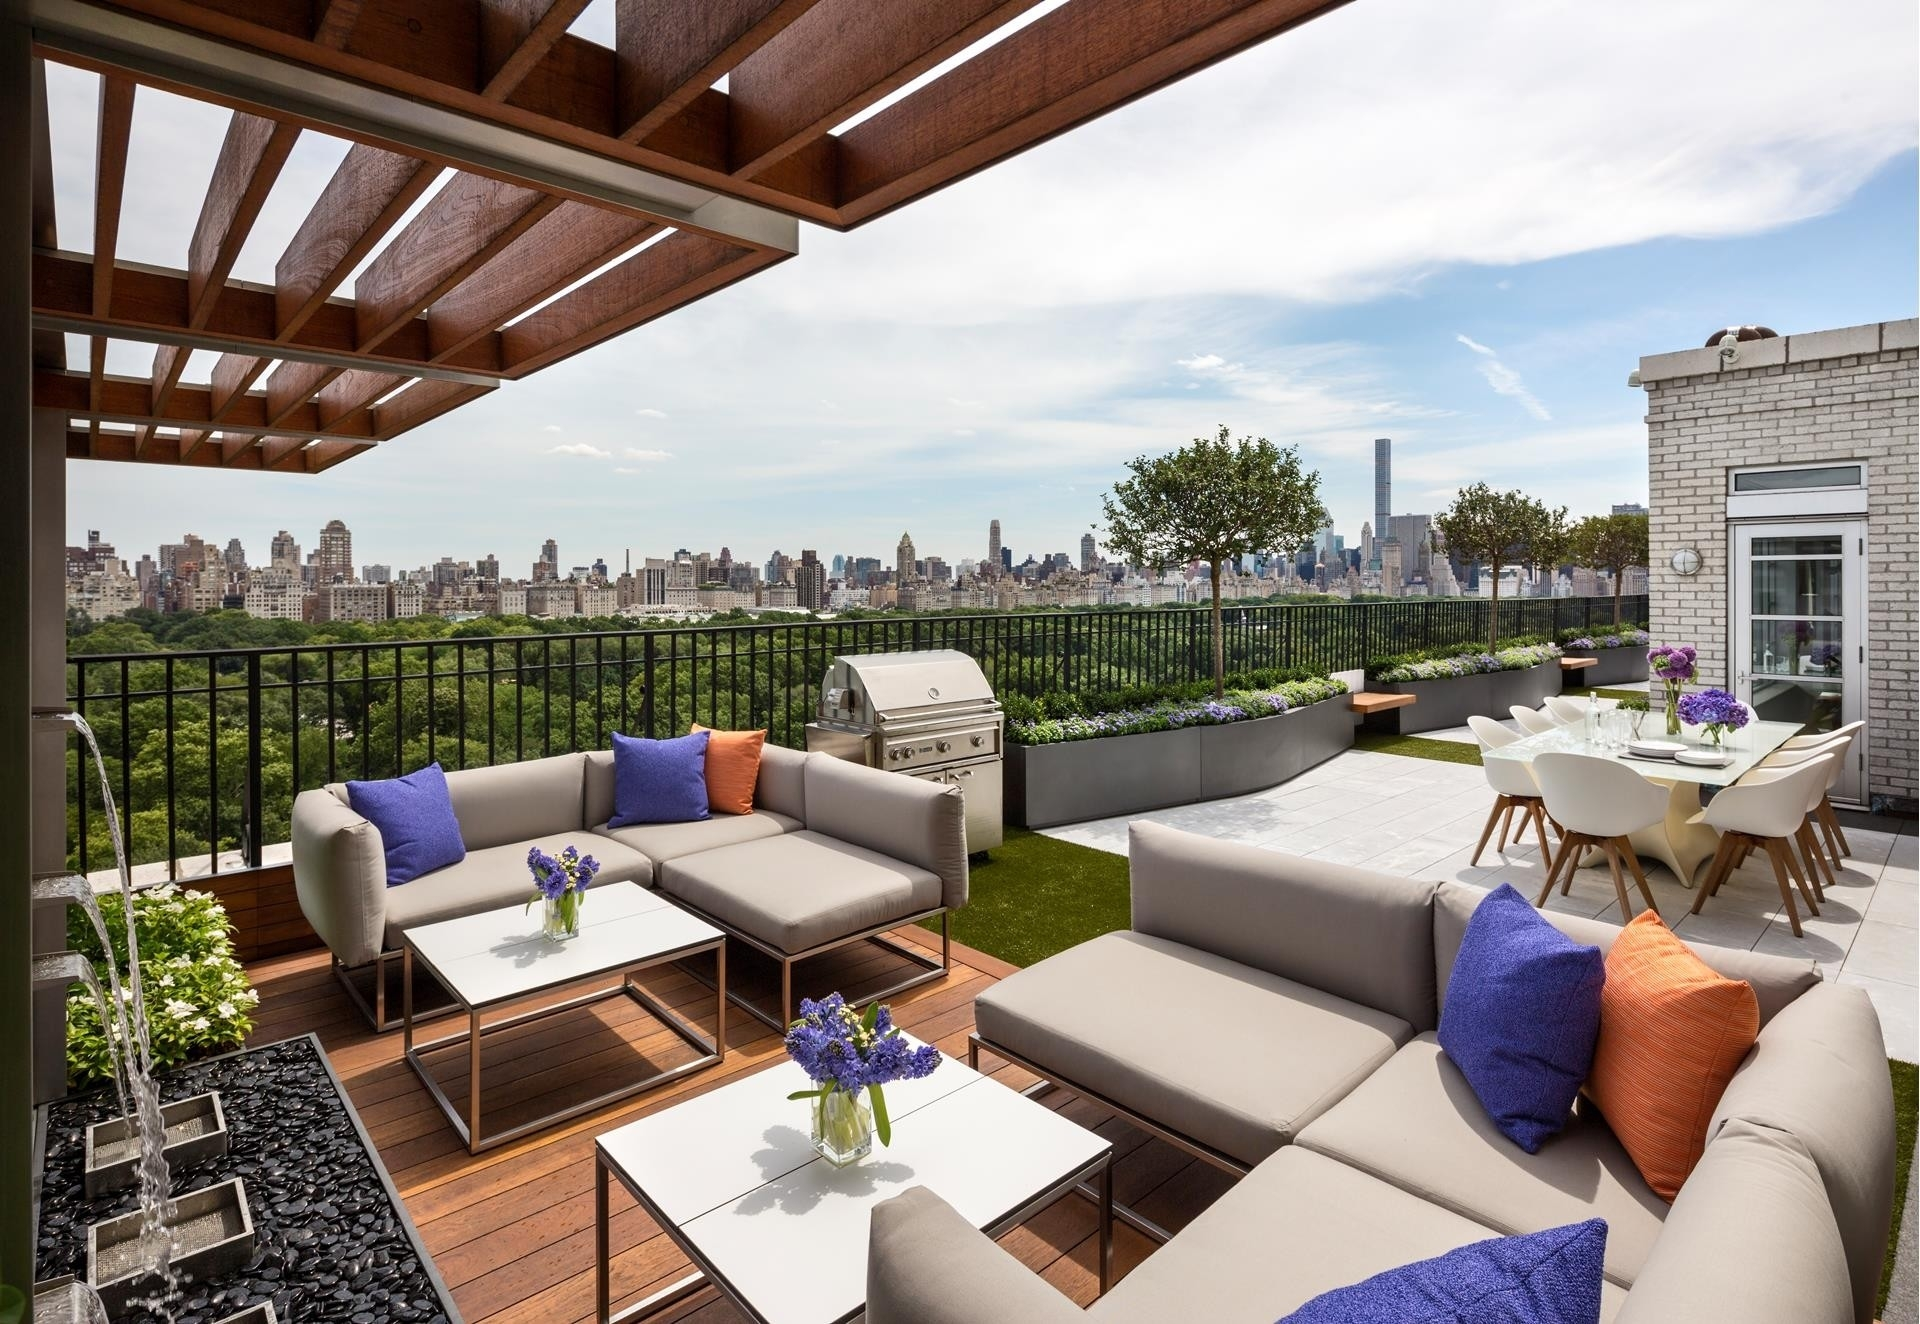 Co-op Properties for Sale at The White House, 262 Central Park West, PHS Upper West Side, New York, NY 10024